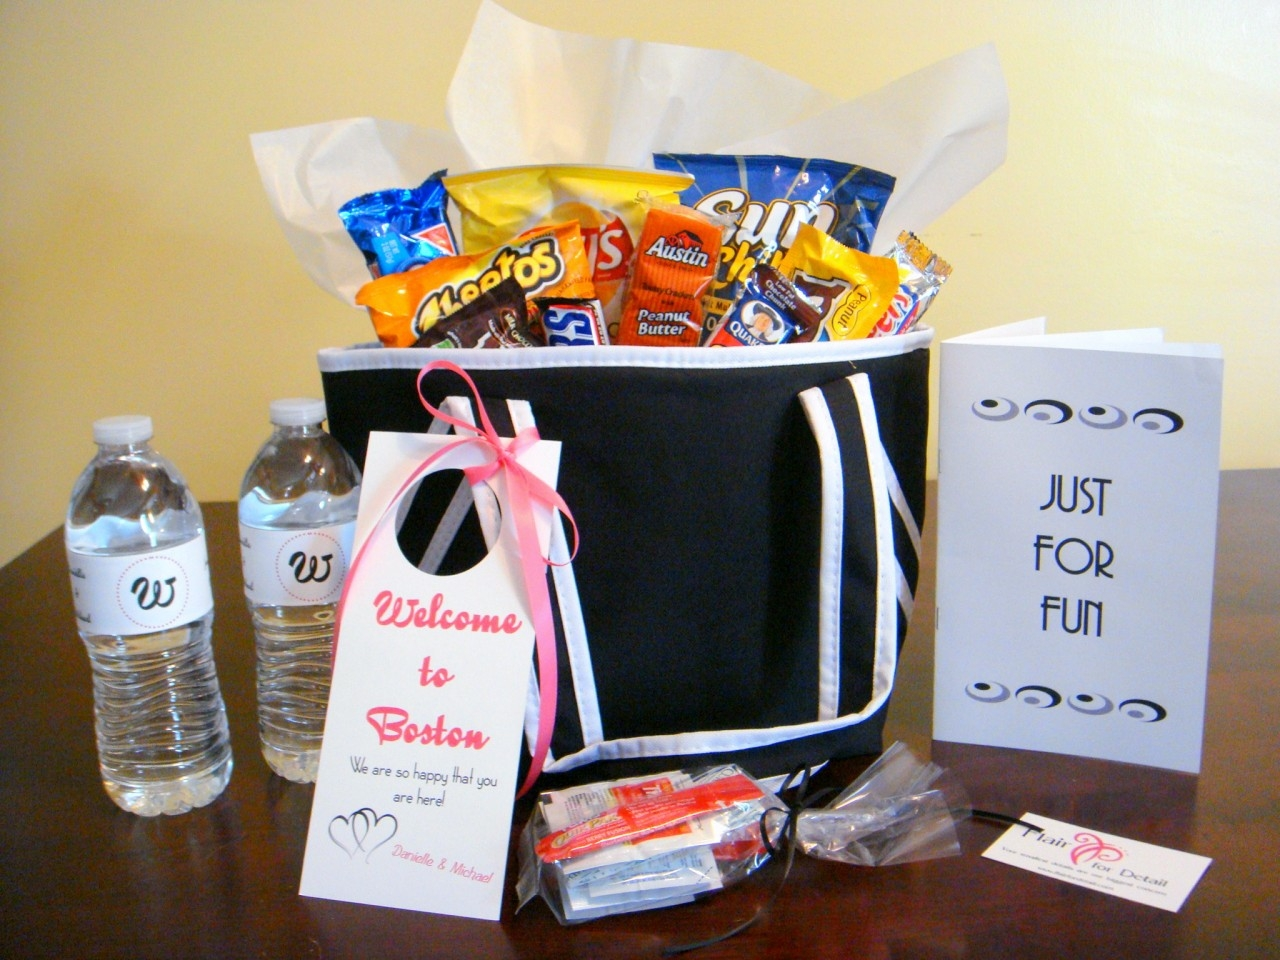 Destination Wedding Gift Baskets Guests : to include is bottled water, but consider location of your wedding ...